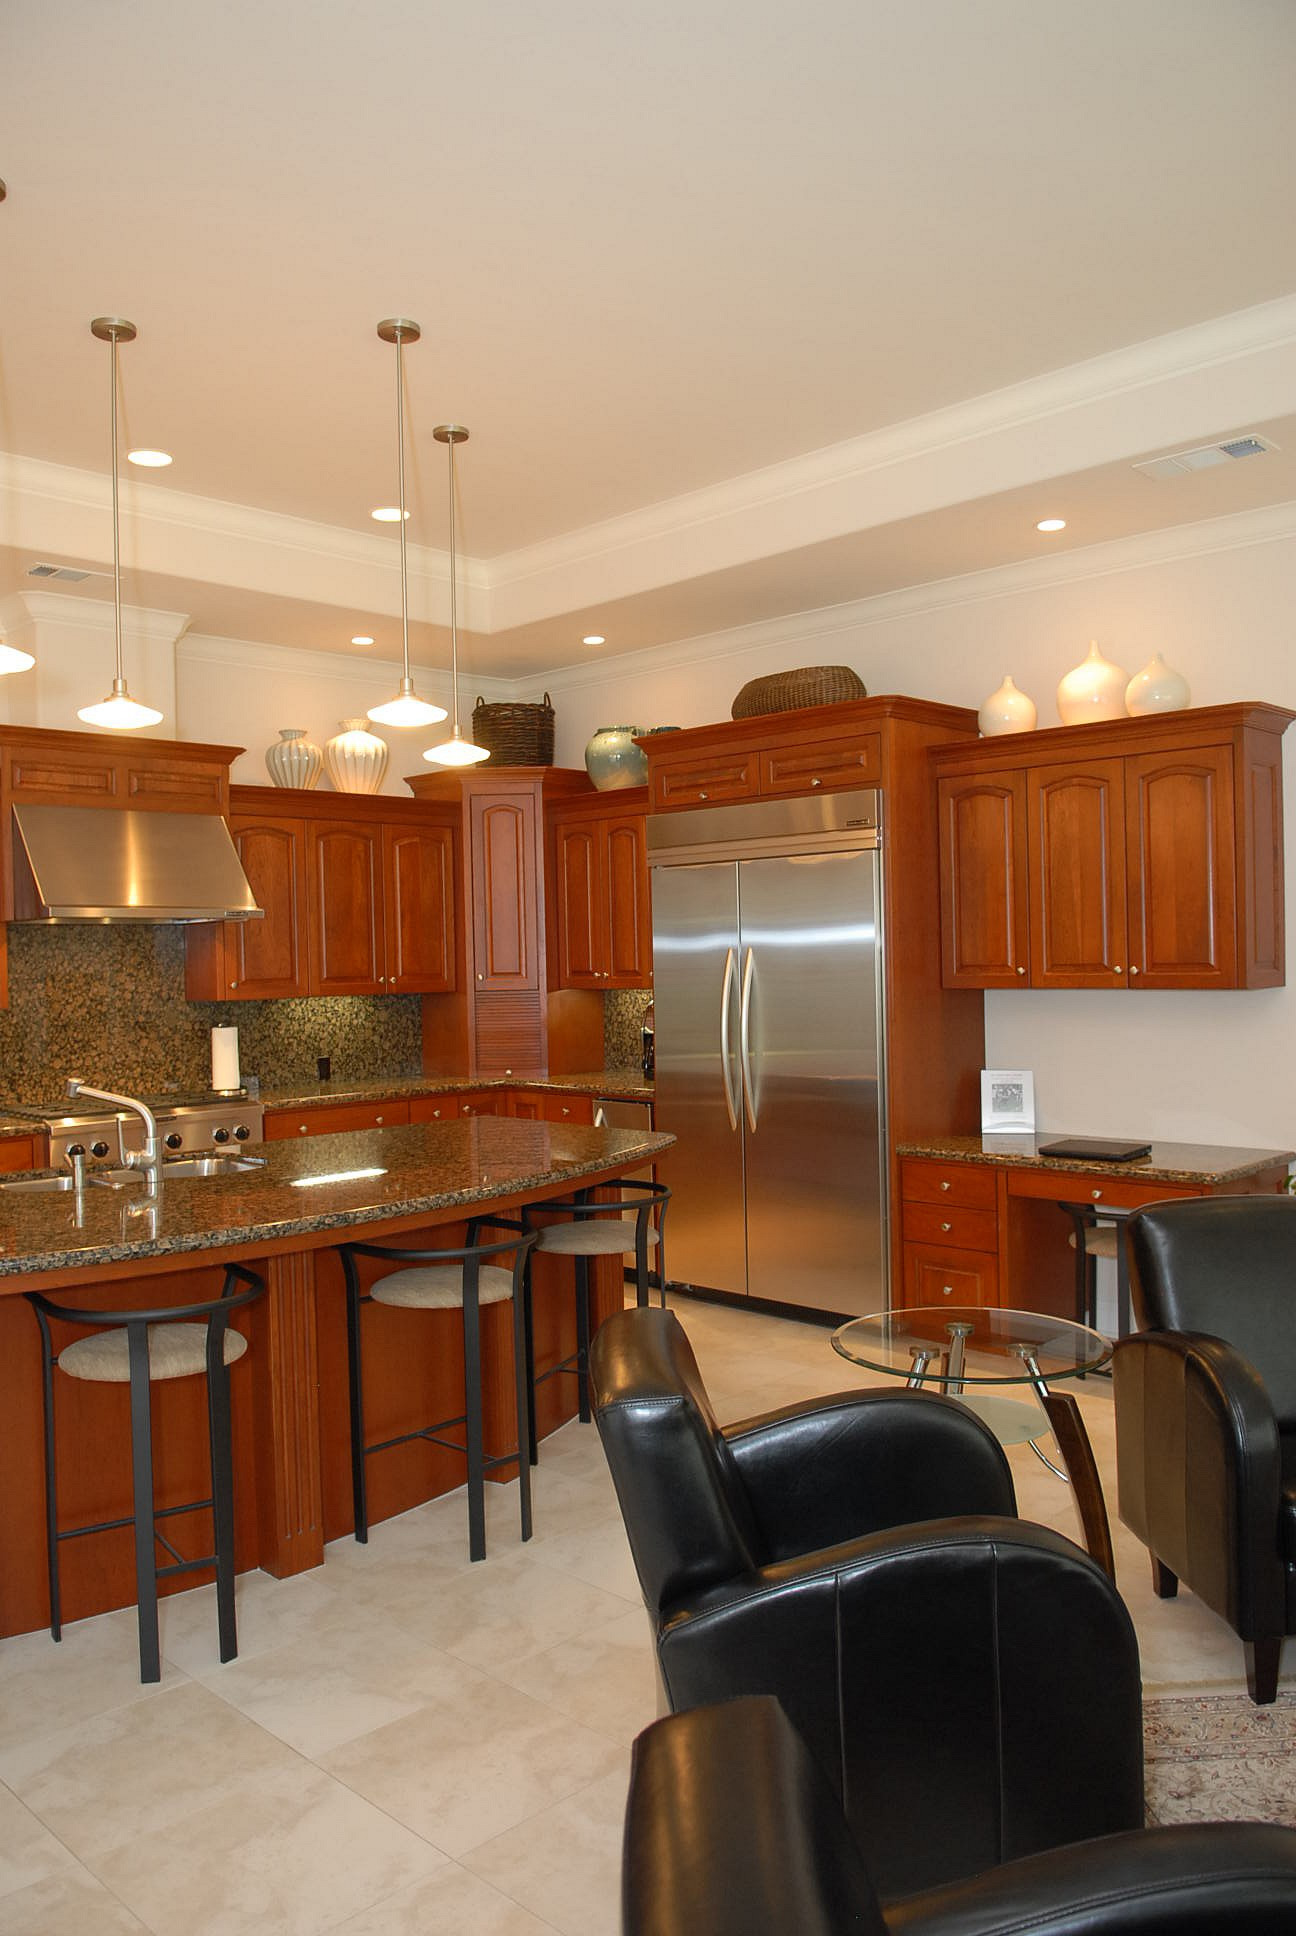 shasta-wood-products-residential-05.jpg